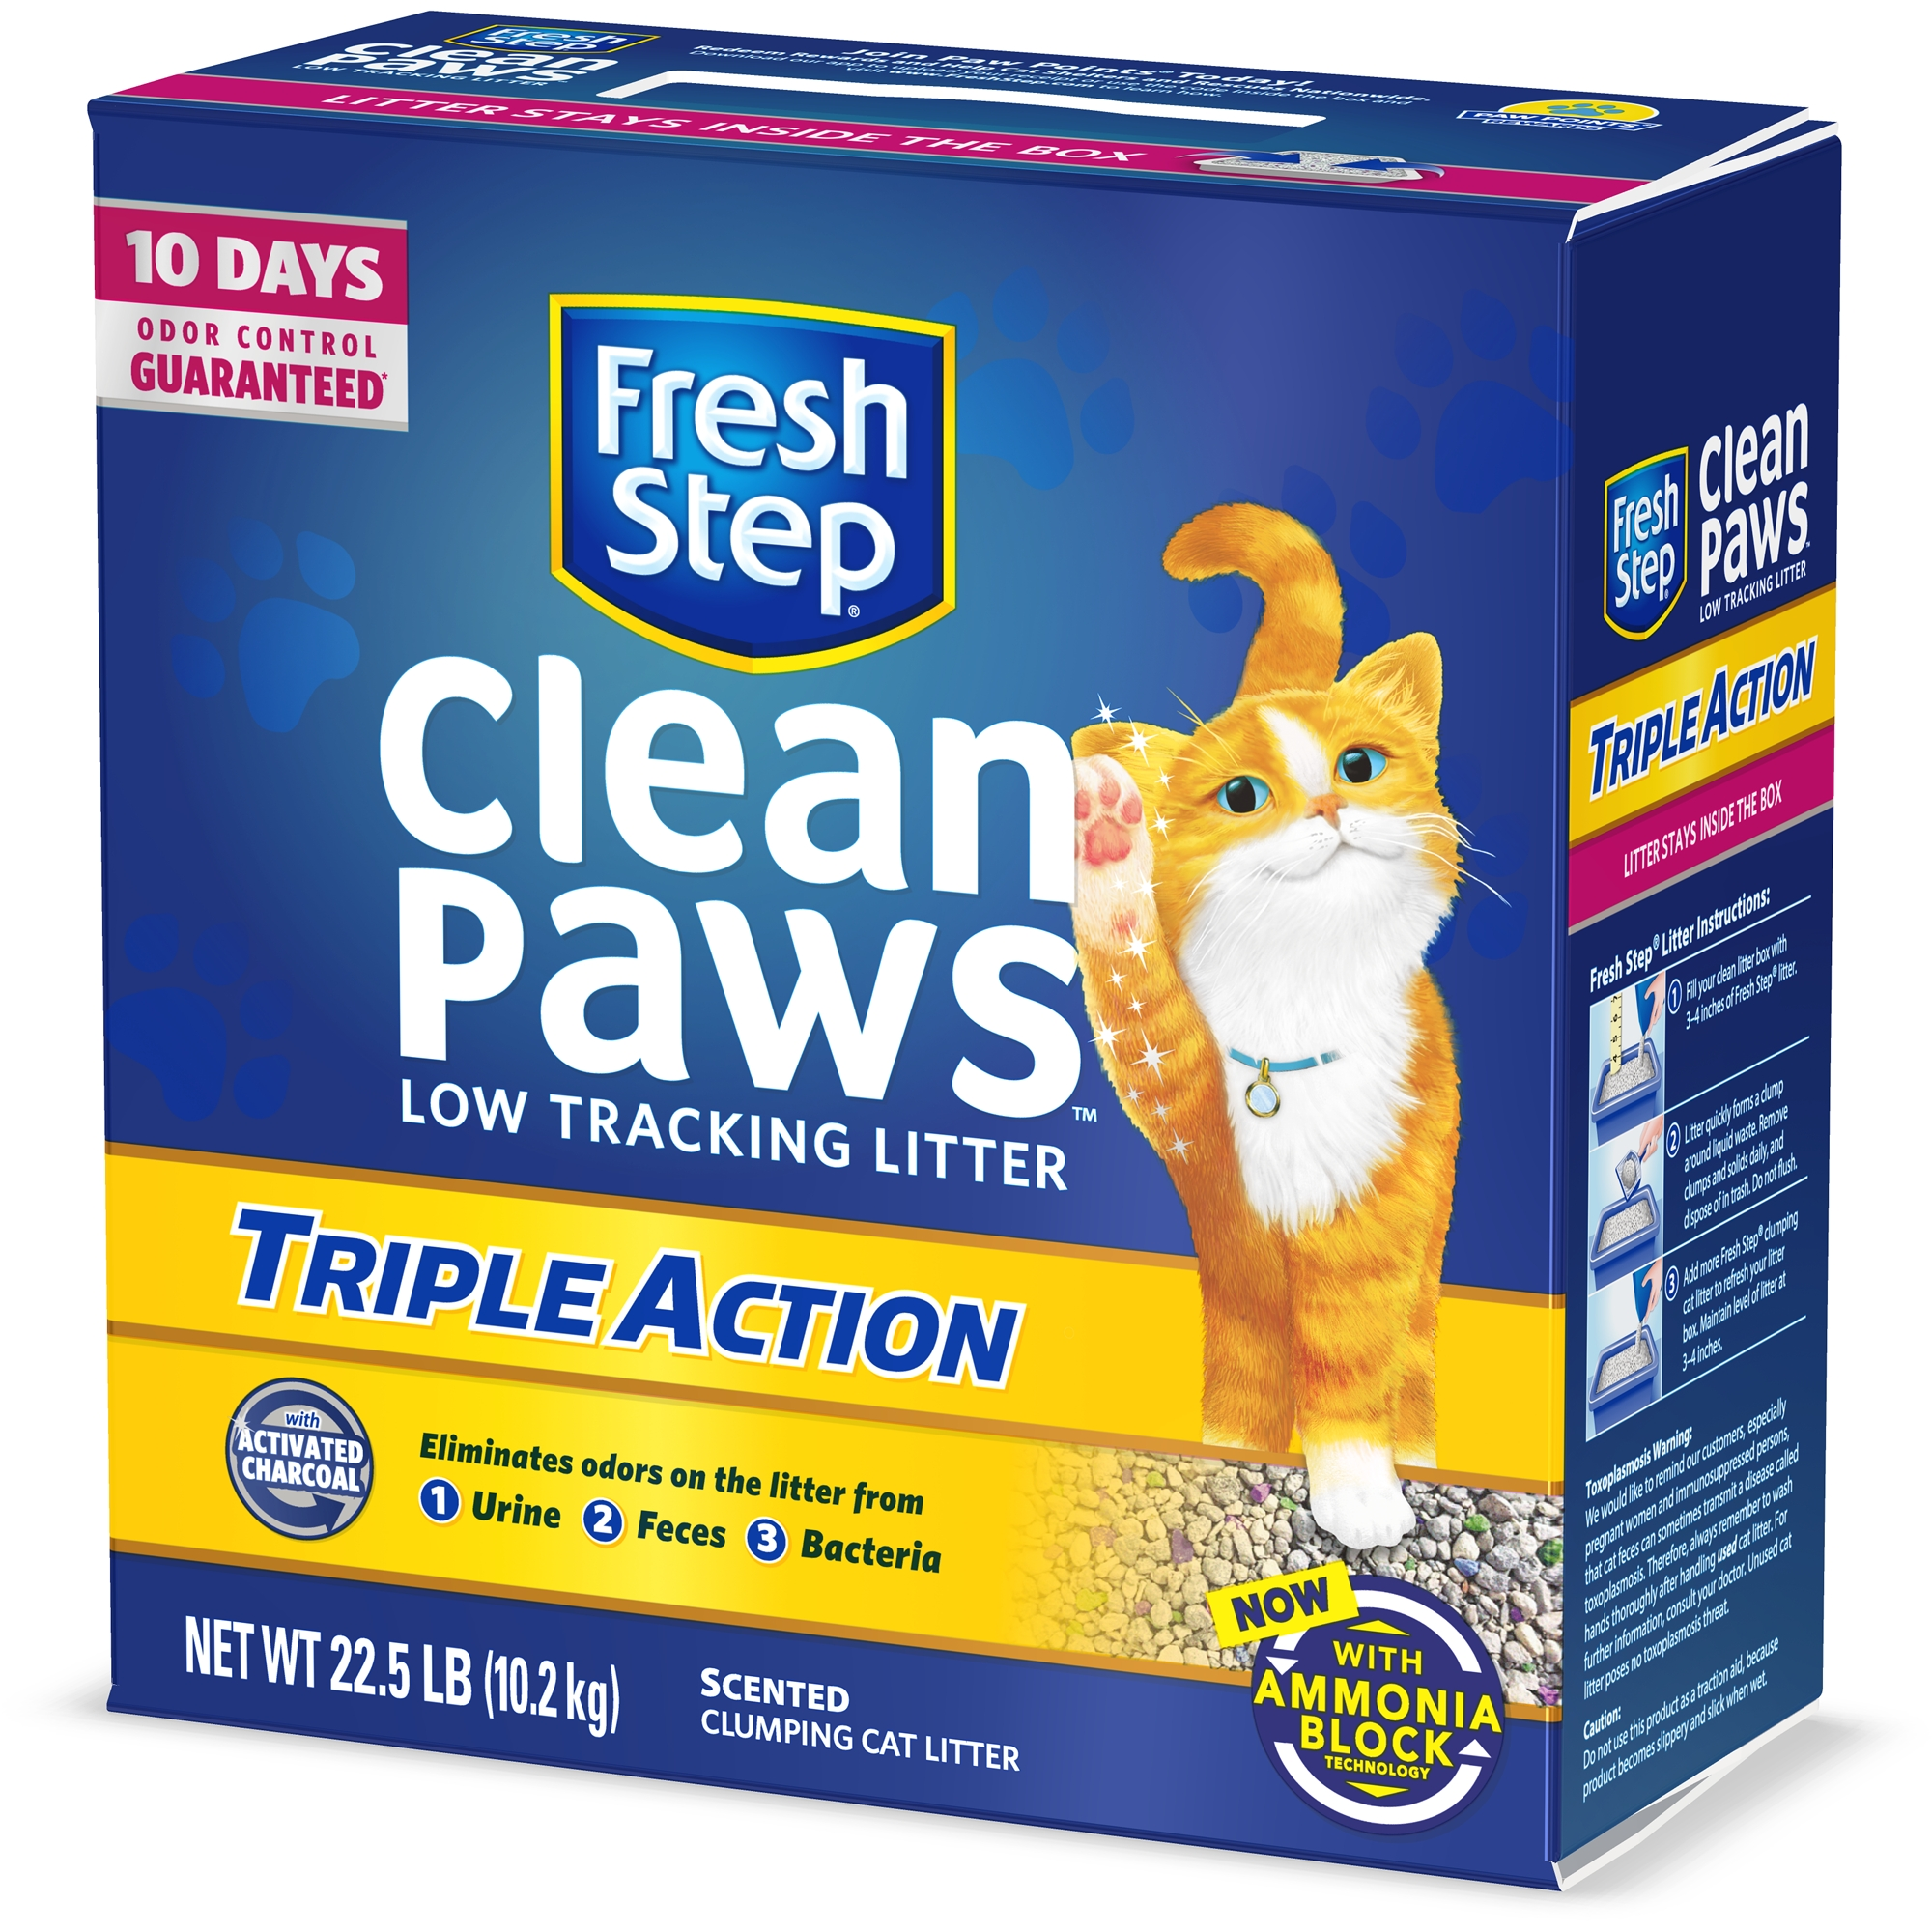 Fresh Step Clean Paws Triple Action Scented Litter, Clumping Cat Litter, 22.5 lbs